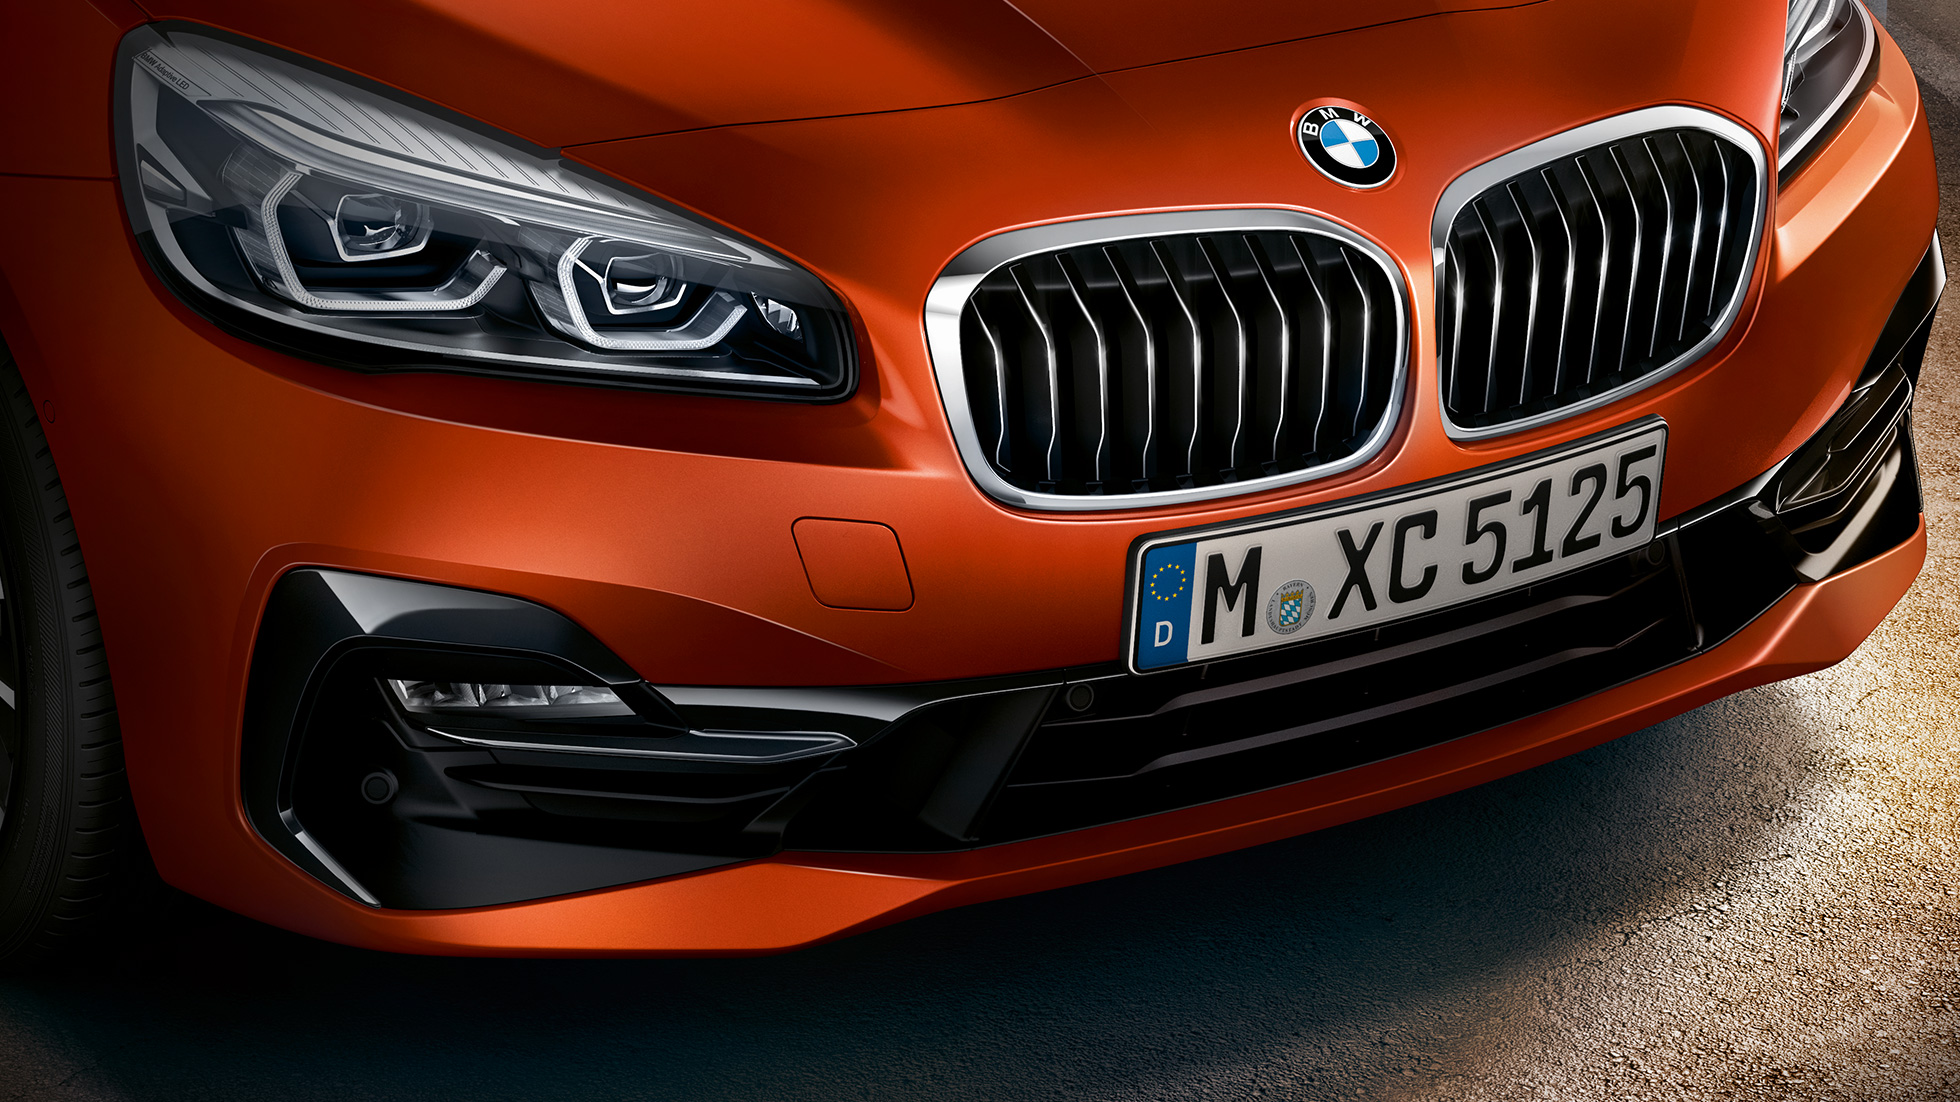 Doppelniere BMW 2er Active Tourer F45 Facelift 2018 Sunset Orange metallic Nahaufnahme Front